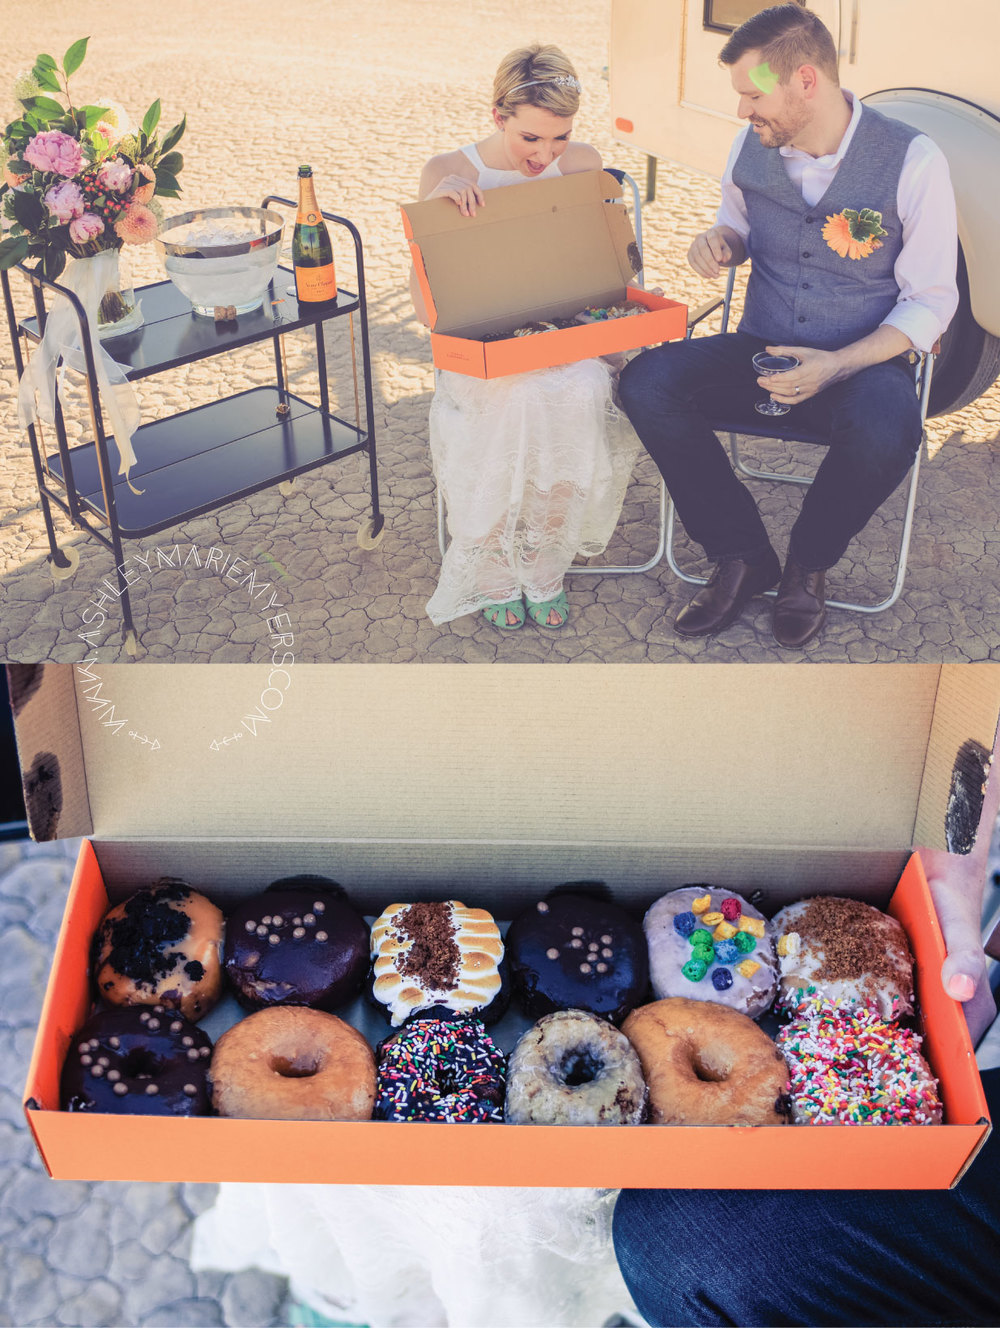 Las Vegas Desert wedding with Flora Pop Dry Lake Bed Wedding, Las Vegas downtown O Face Donuts